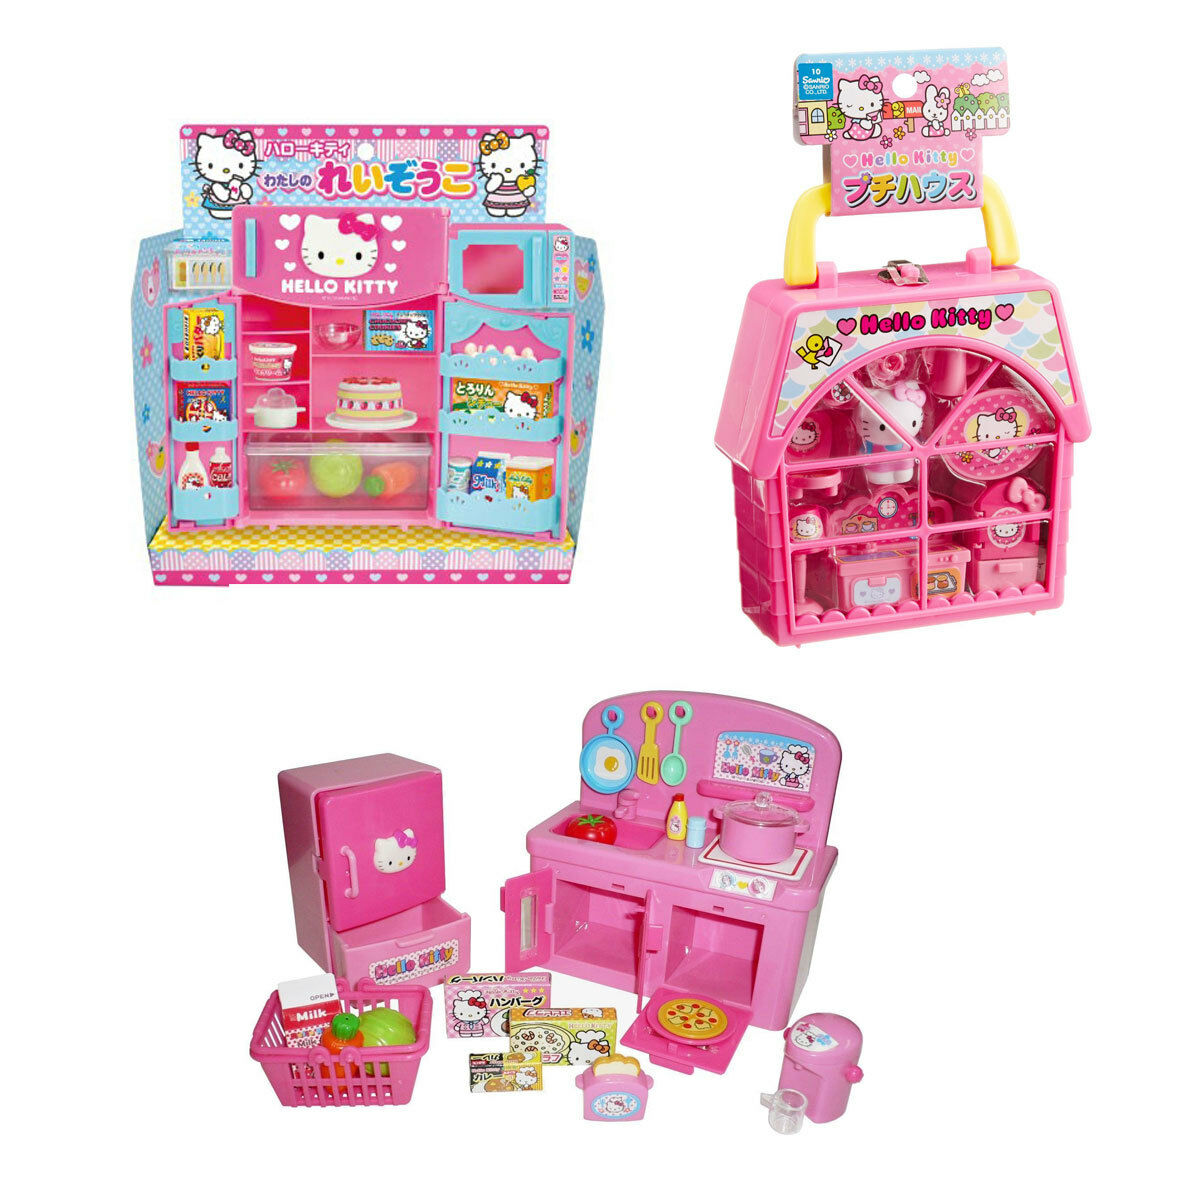 3 Unique Hello Kitty Sets – Refrigerator, Kitchen and Petty House Play Sets